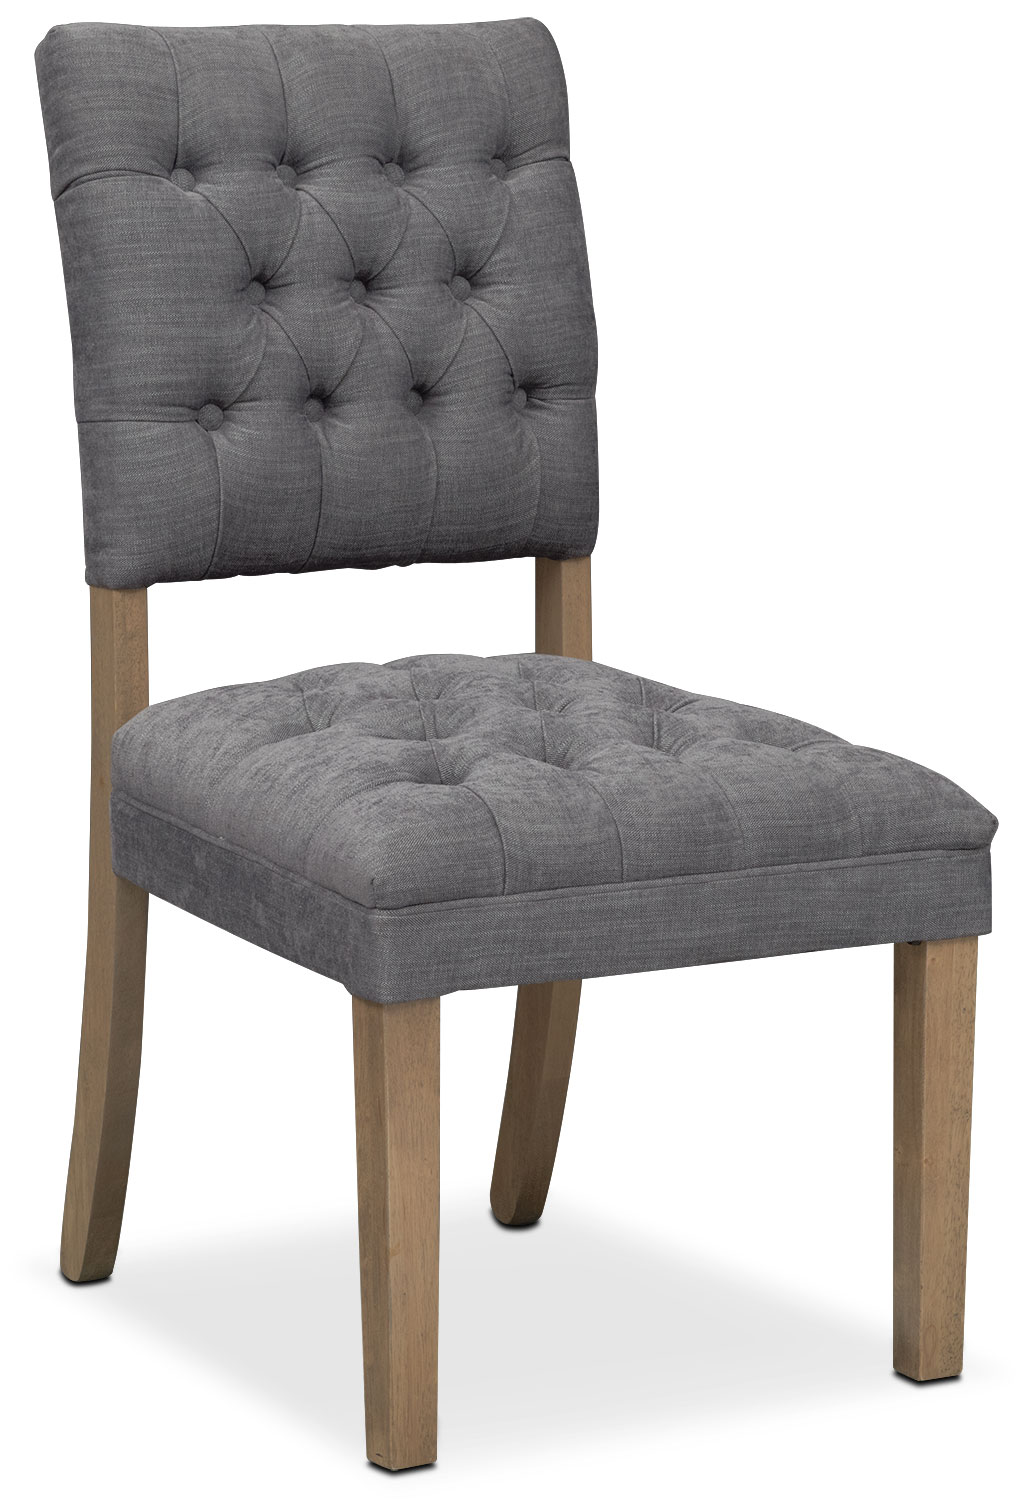 Dining Room Furniture - Gretchen Side Chair - Gray